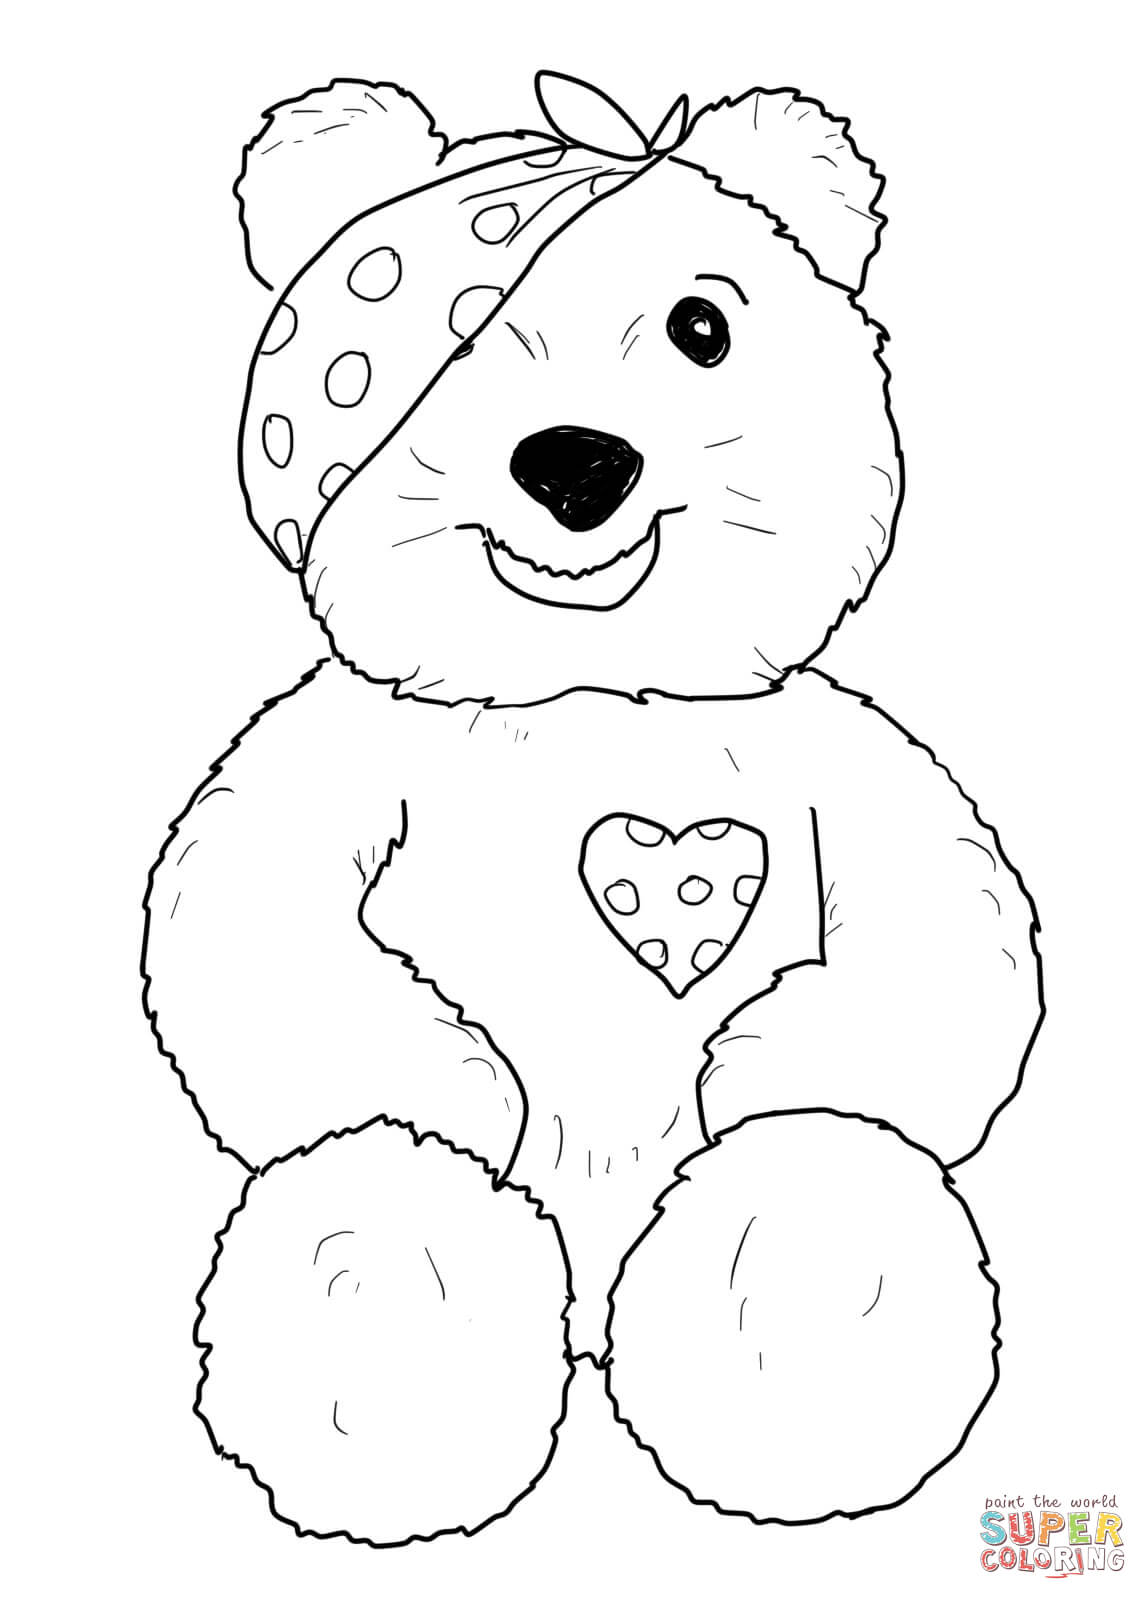 pudsey bear colouring in pudsey bear free colouring pages pudsey bear colouring in